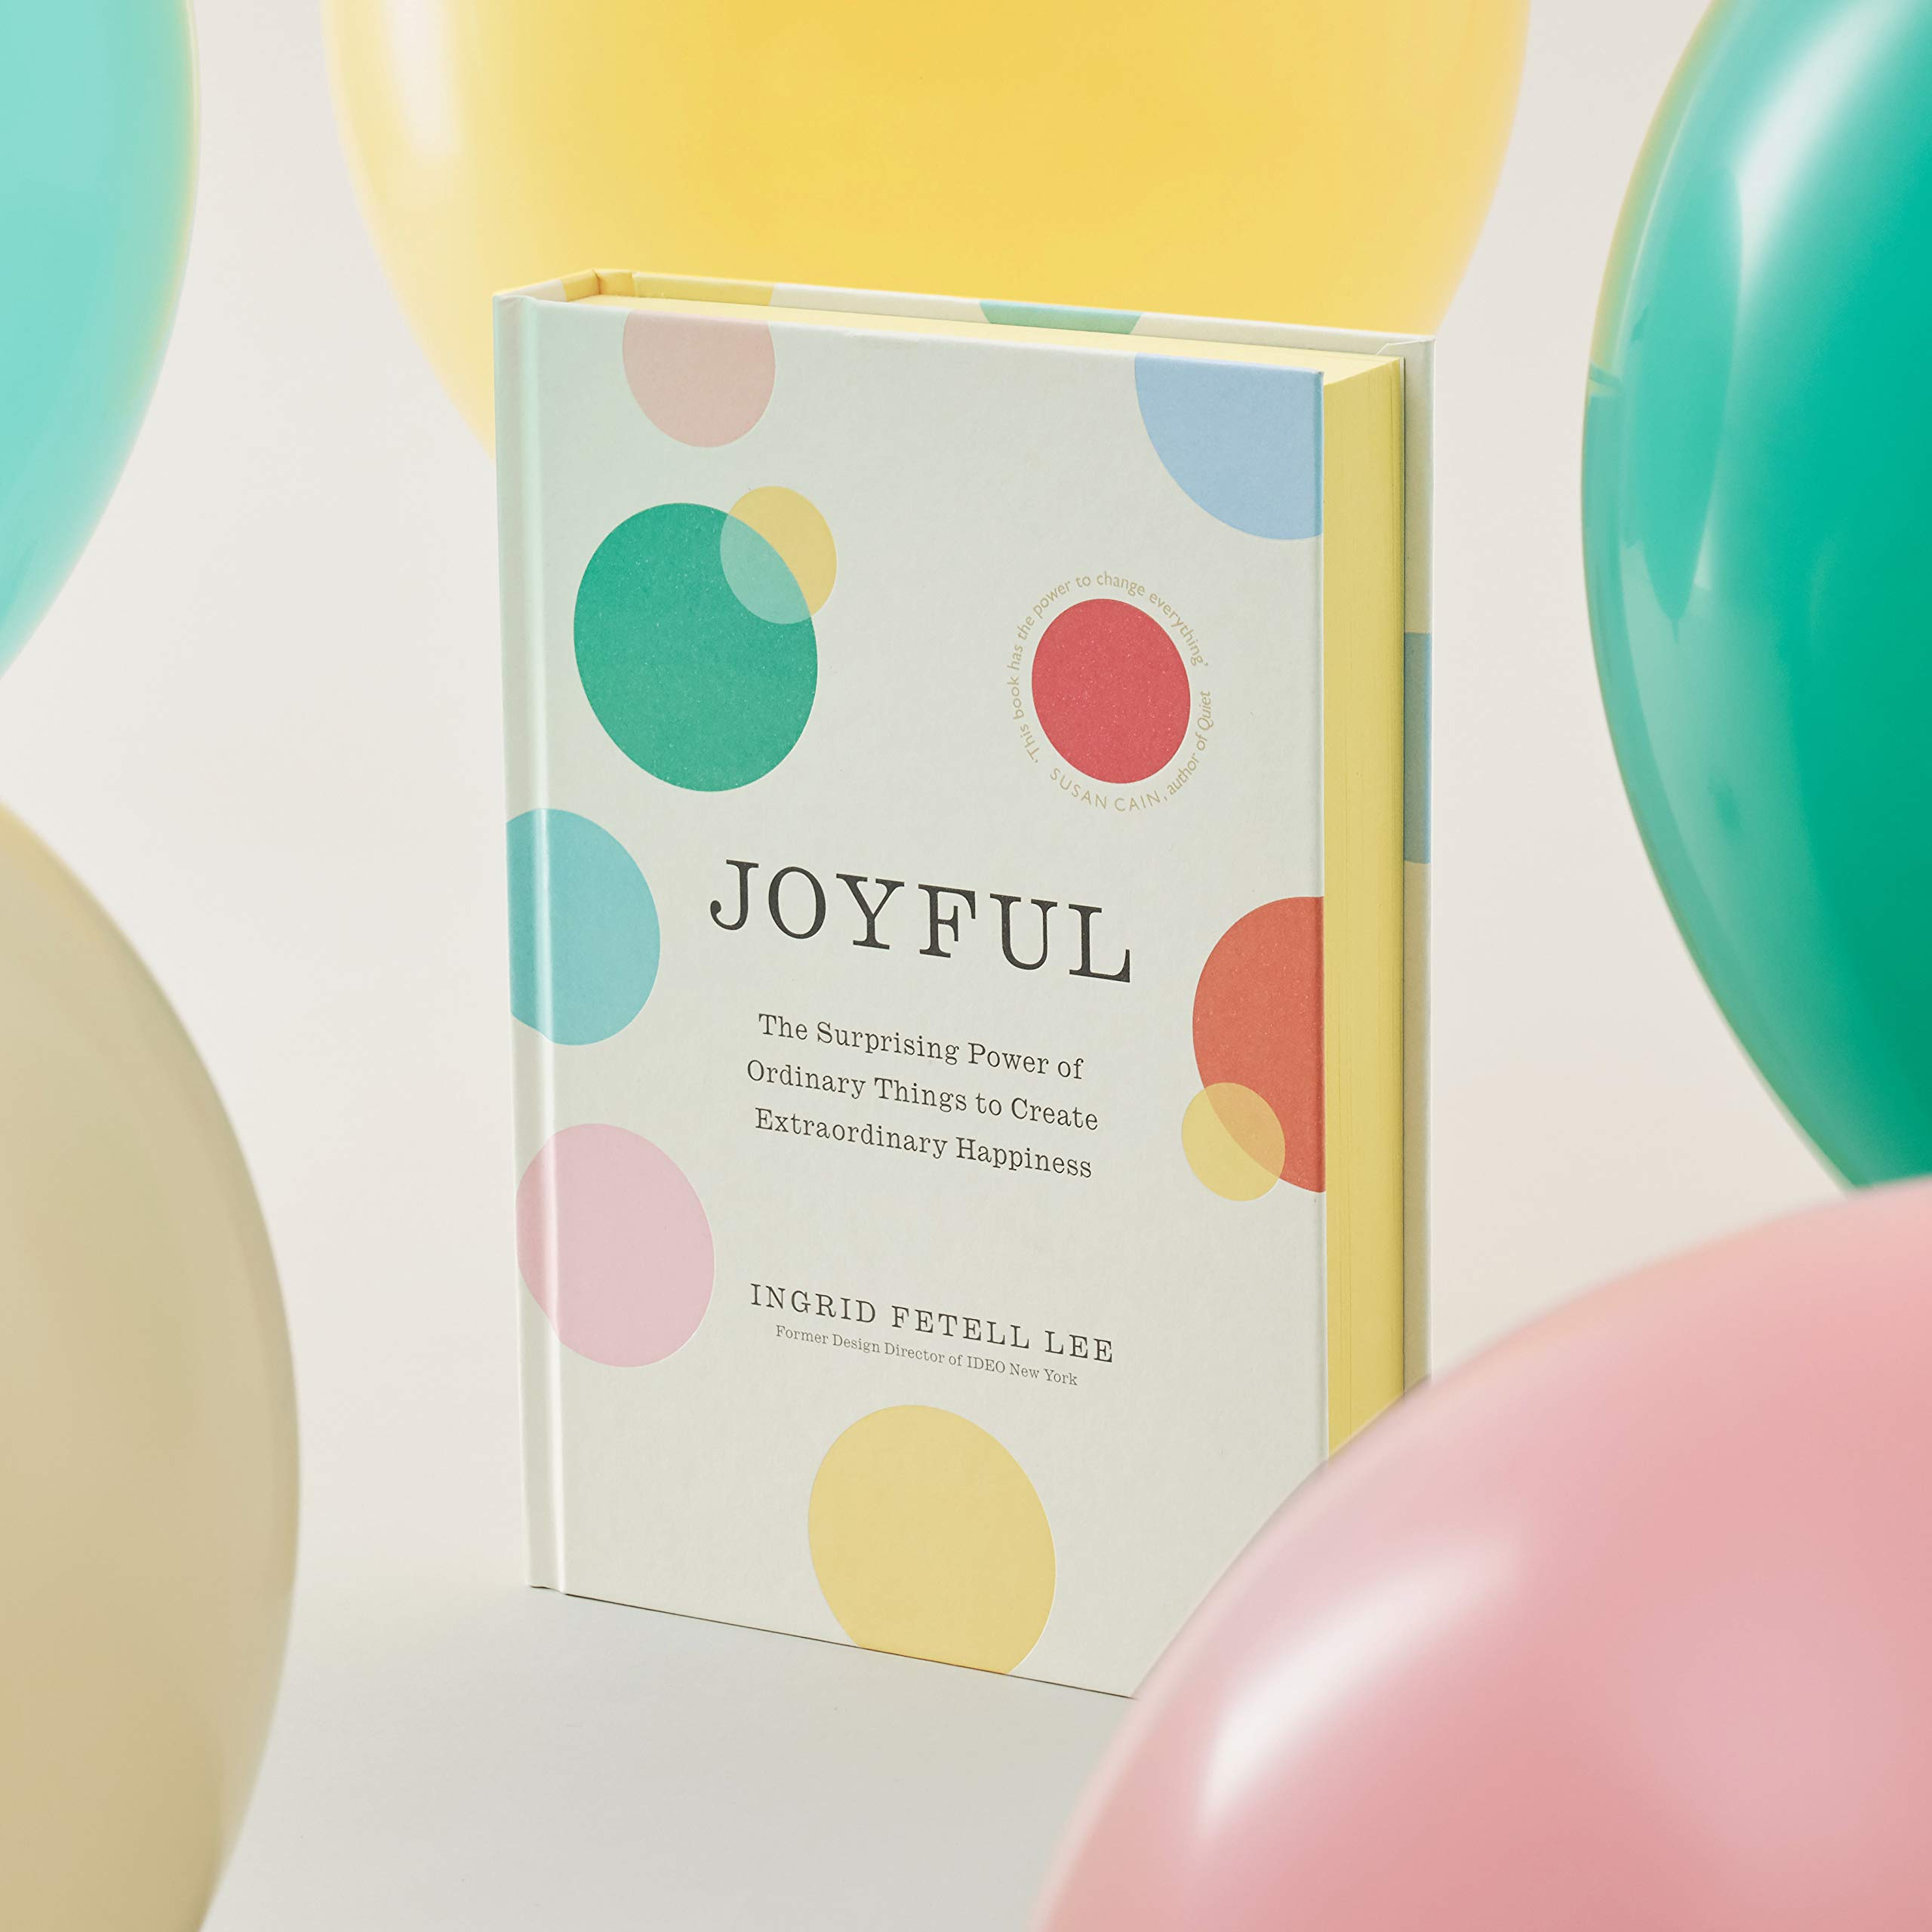 Joyful The Surprising Power Of Ordinary Things To Create Electricity For Kids It39s Shocking Extraordinary Happiness Ingrid Fetell Lee 9781846045394 Books